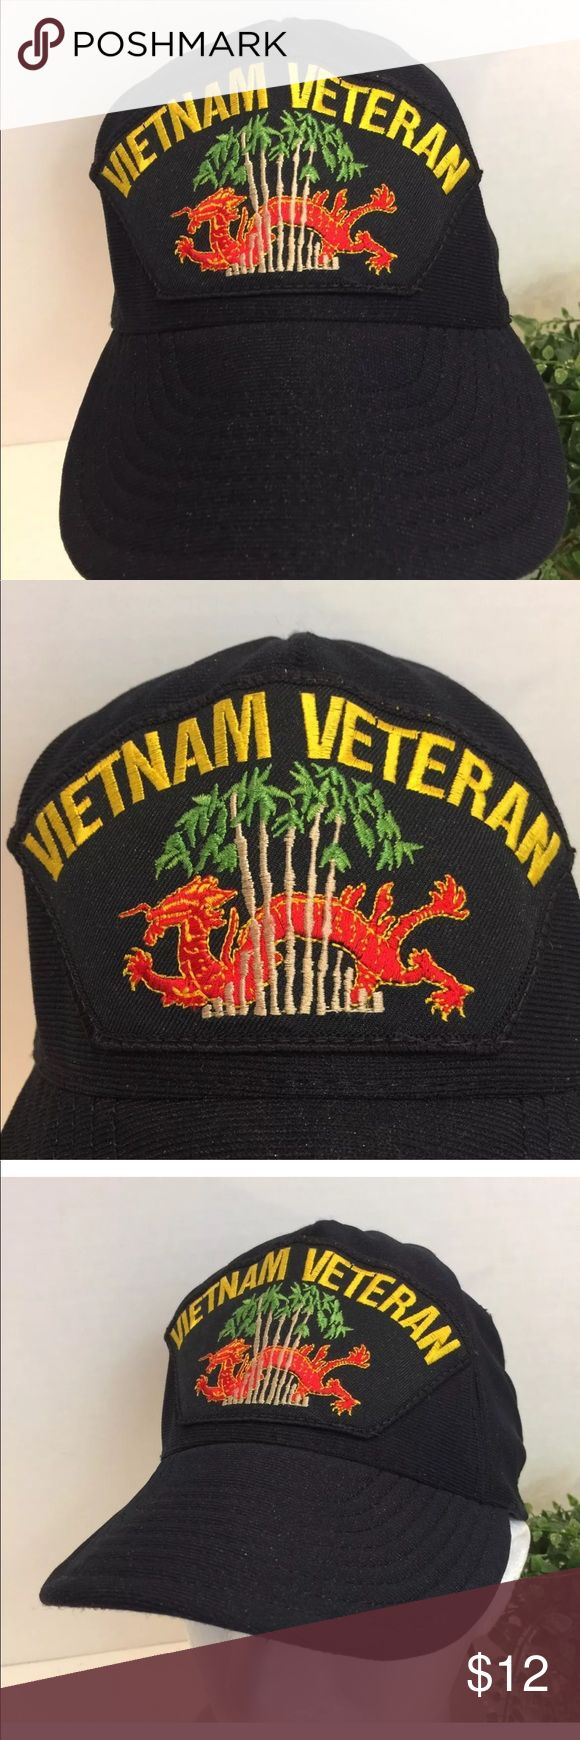 Vietnam Veteran US Military Soft Slouch Bill Hat Vietnam Veteran United States Military Soft Flexible Slouch Bill Hat SnapBack Blue Black  This is a beautiful black blue hat honoring the Vietnam Veteran. Any Veteran would be proud to wear this hat.   Comes from a smoke free pet free environment. Will be shipped in a box. Unbranded Accessories Hats